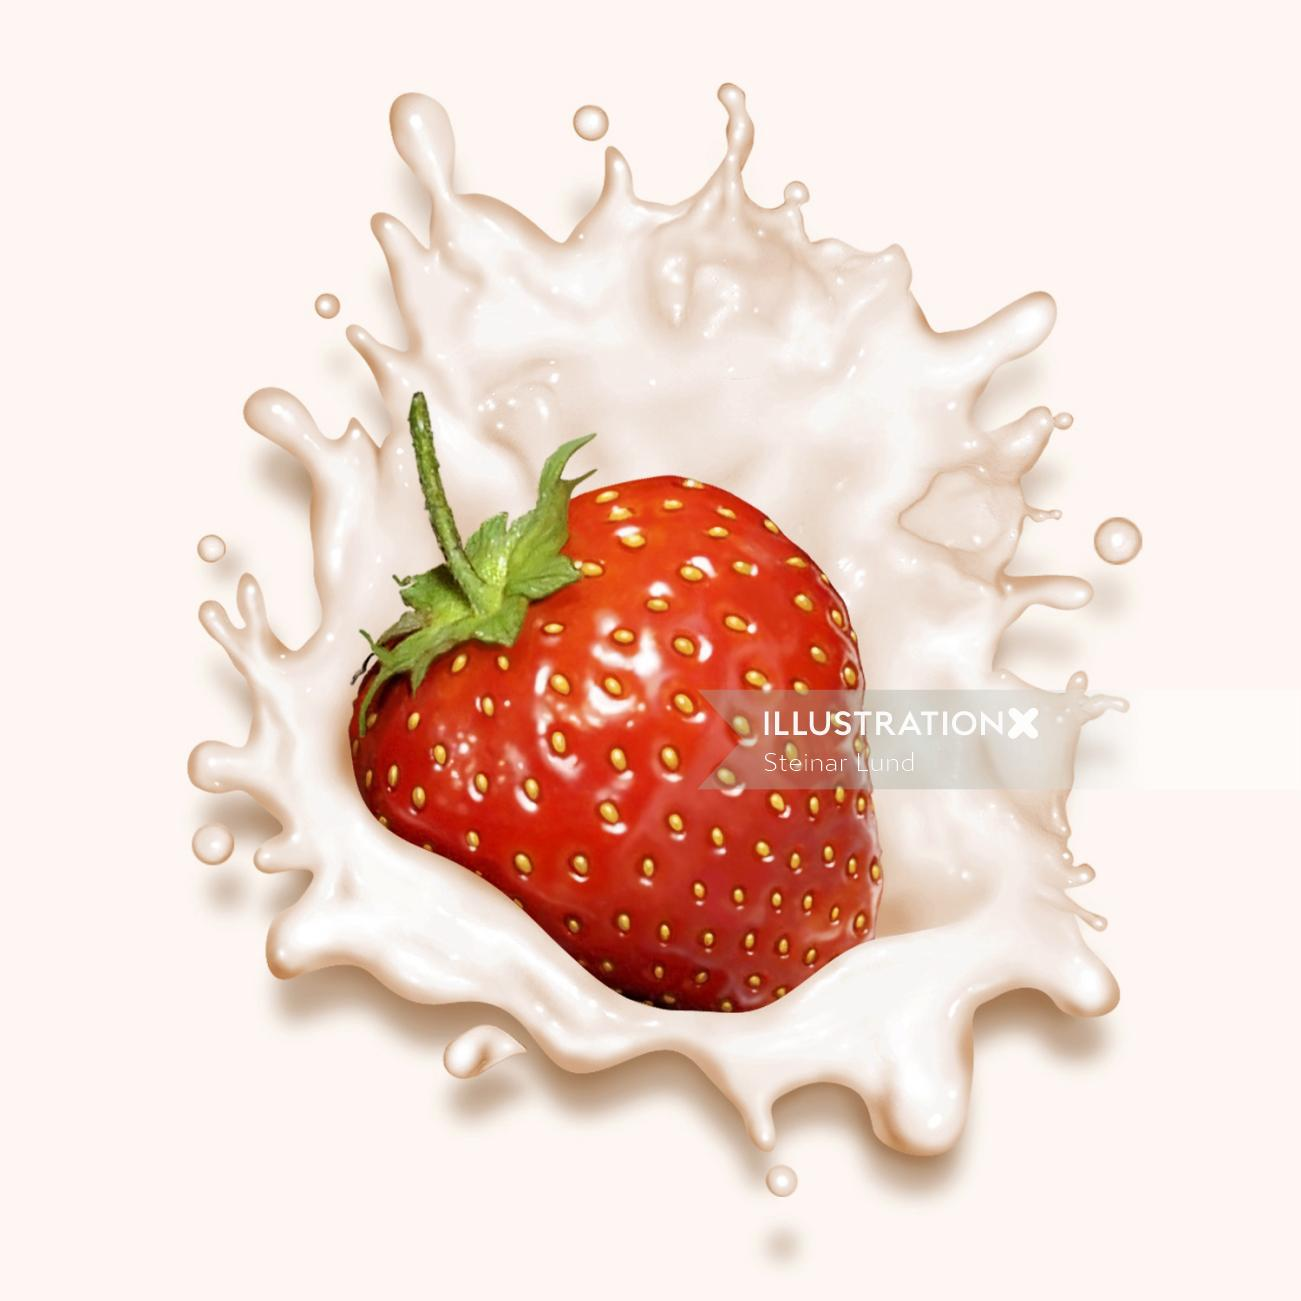 Strawberry falling into yogurt causing a splash